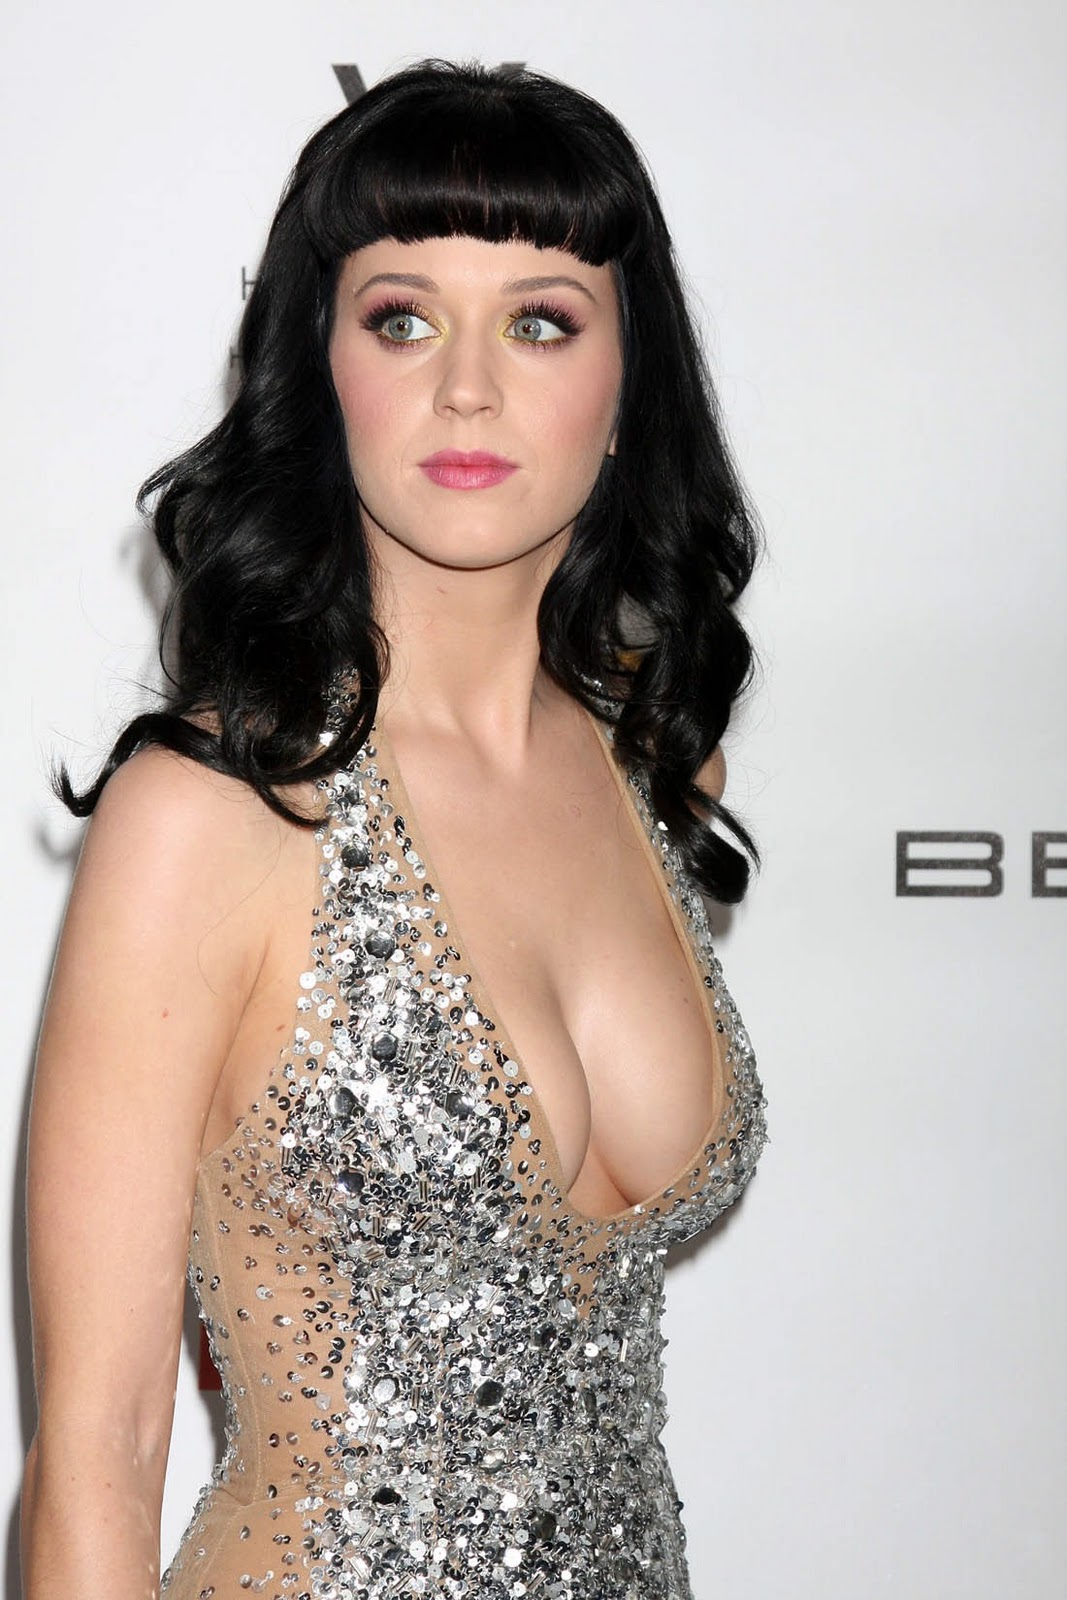 Katy Perry on Awards